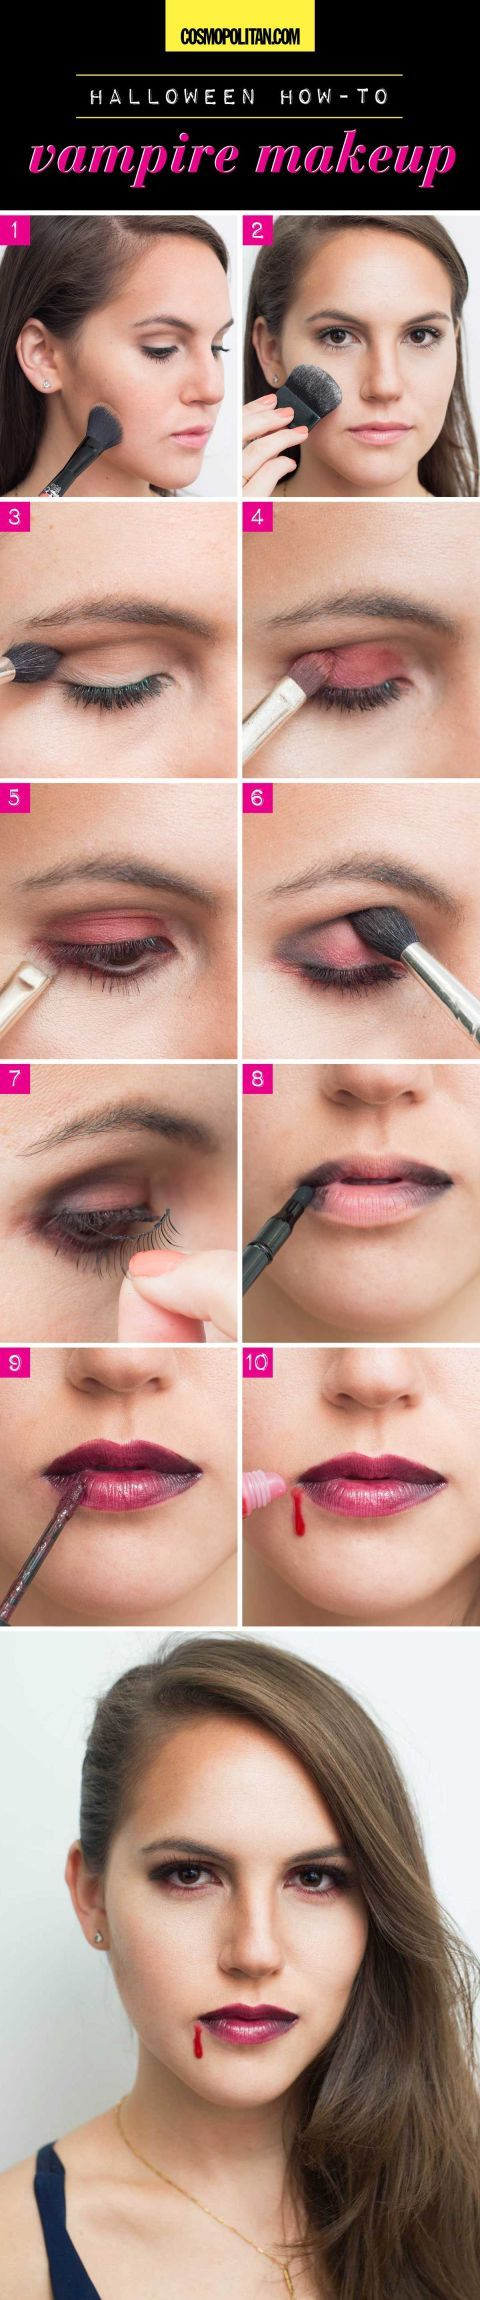 best ideas about simple halloween makeup 10 halloween looks you can create makeup you already have simple